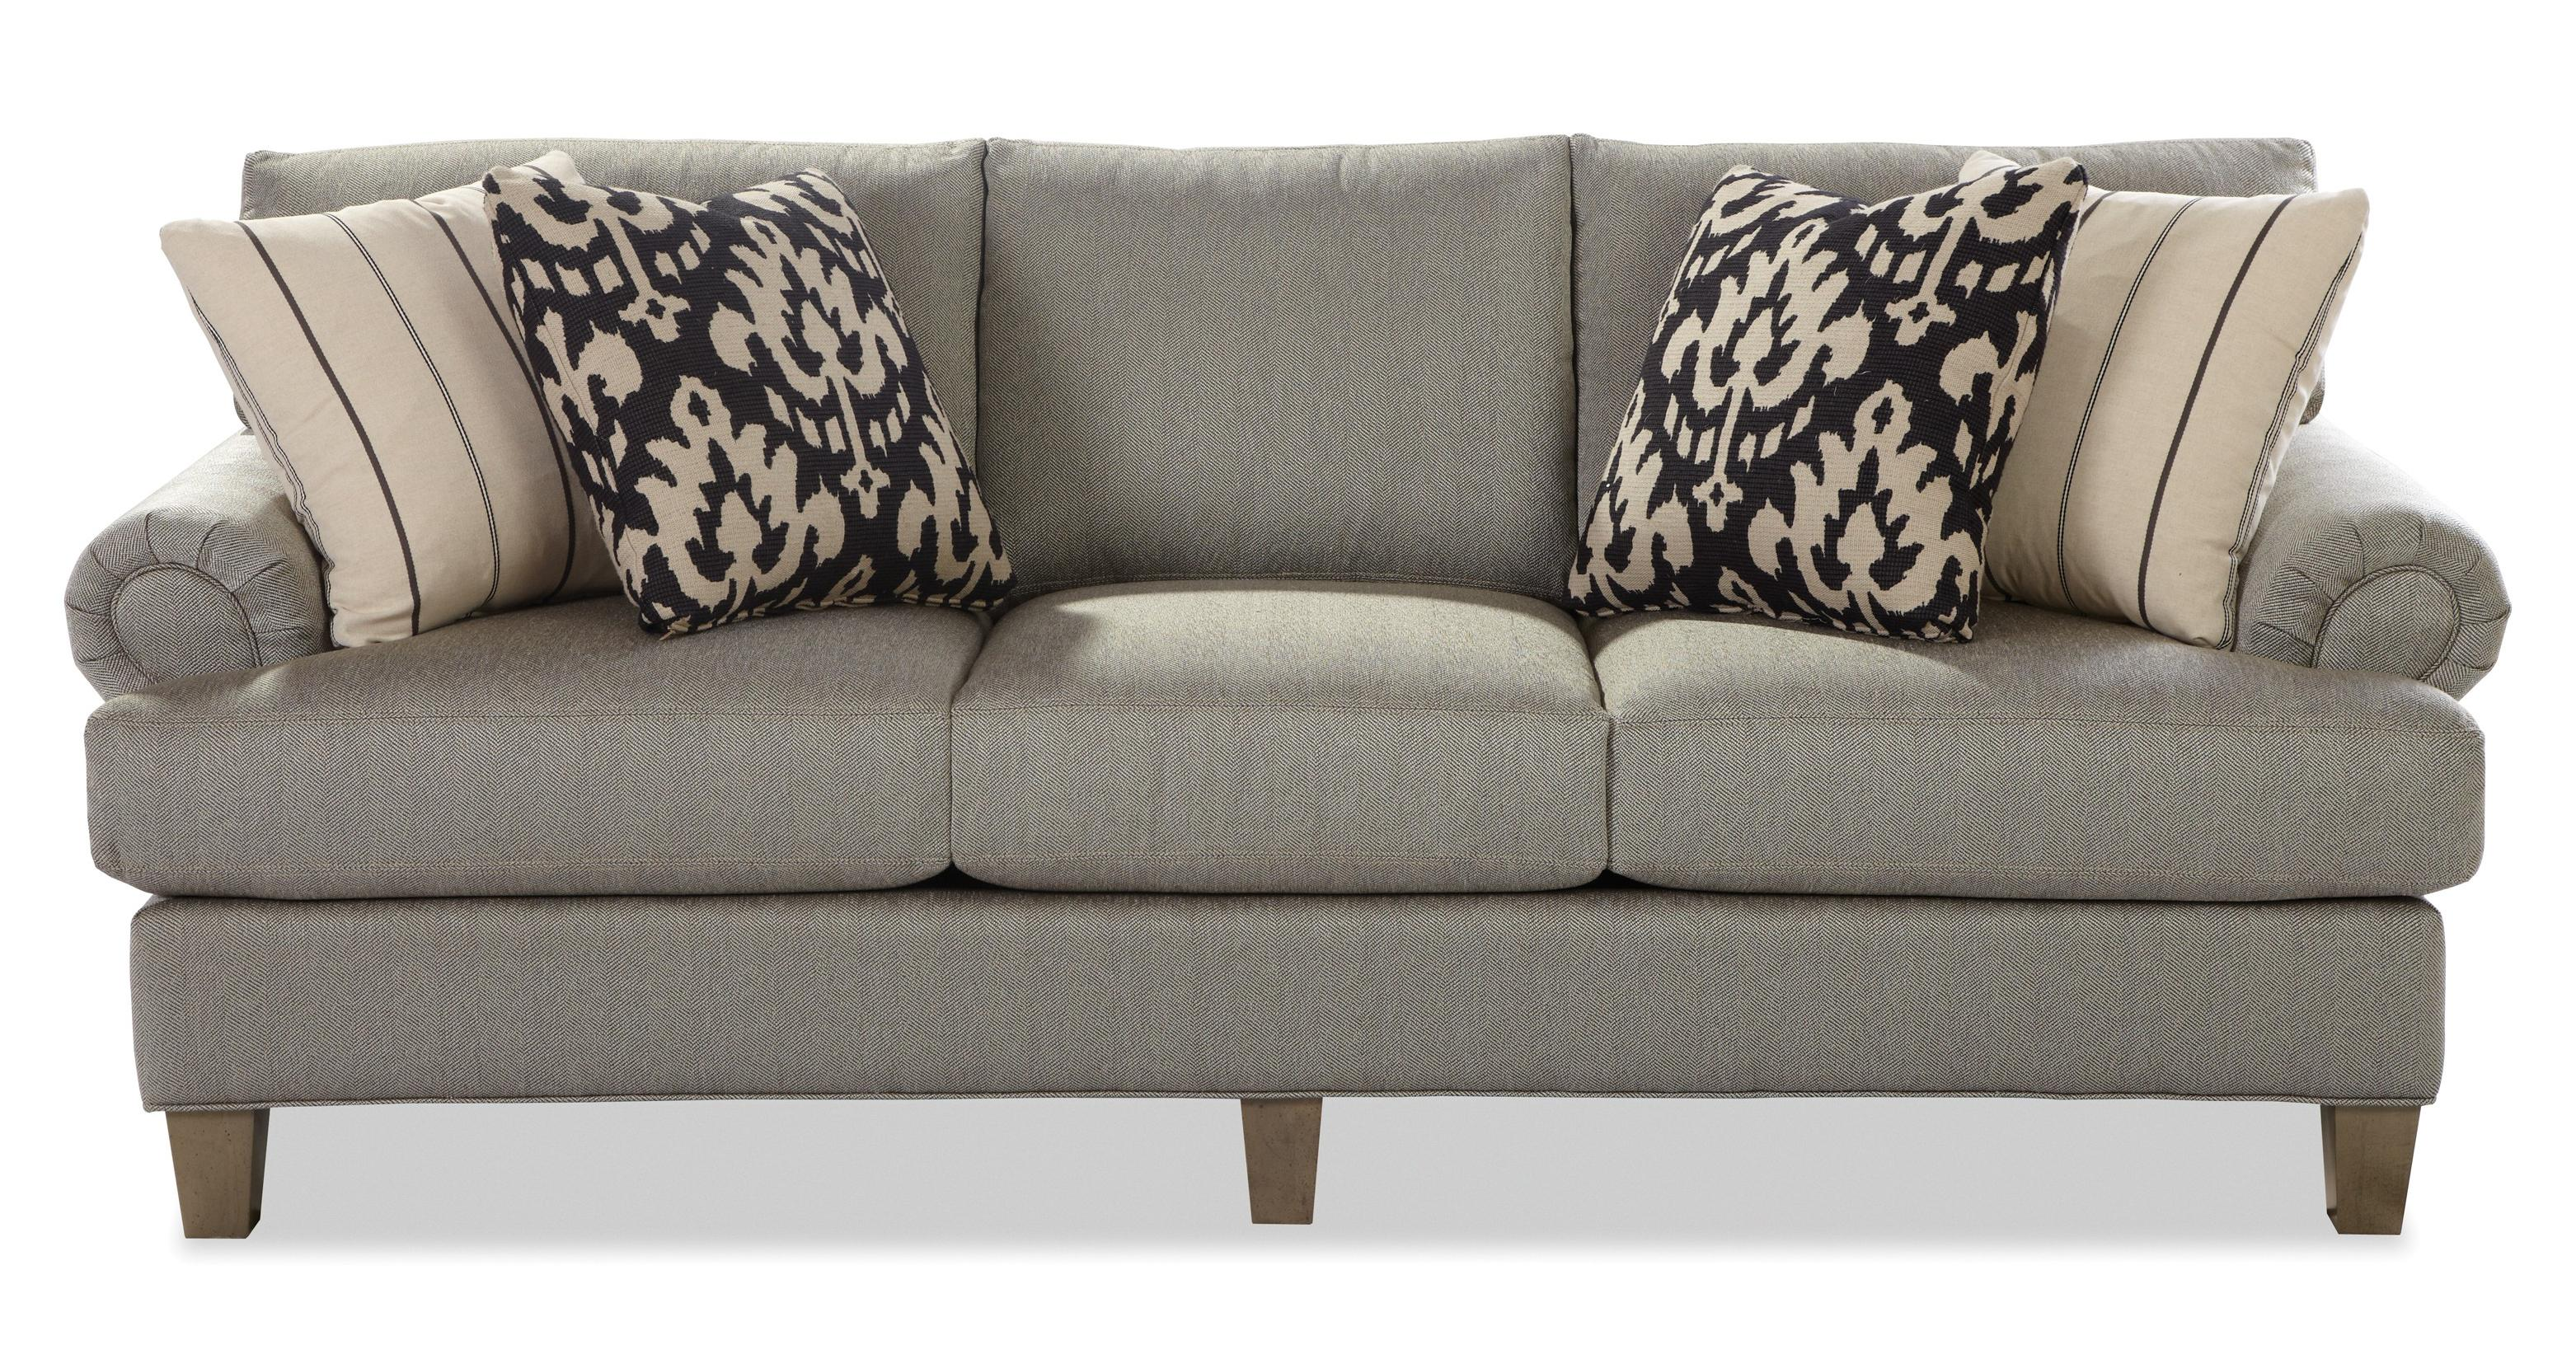 Craftmaster 7406 Sofa - Item Number: 740650-MINETTE-41